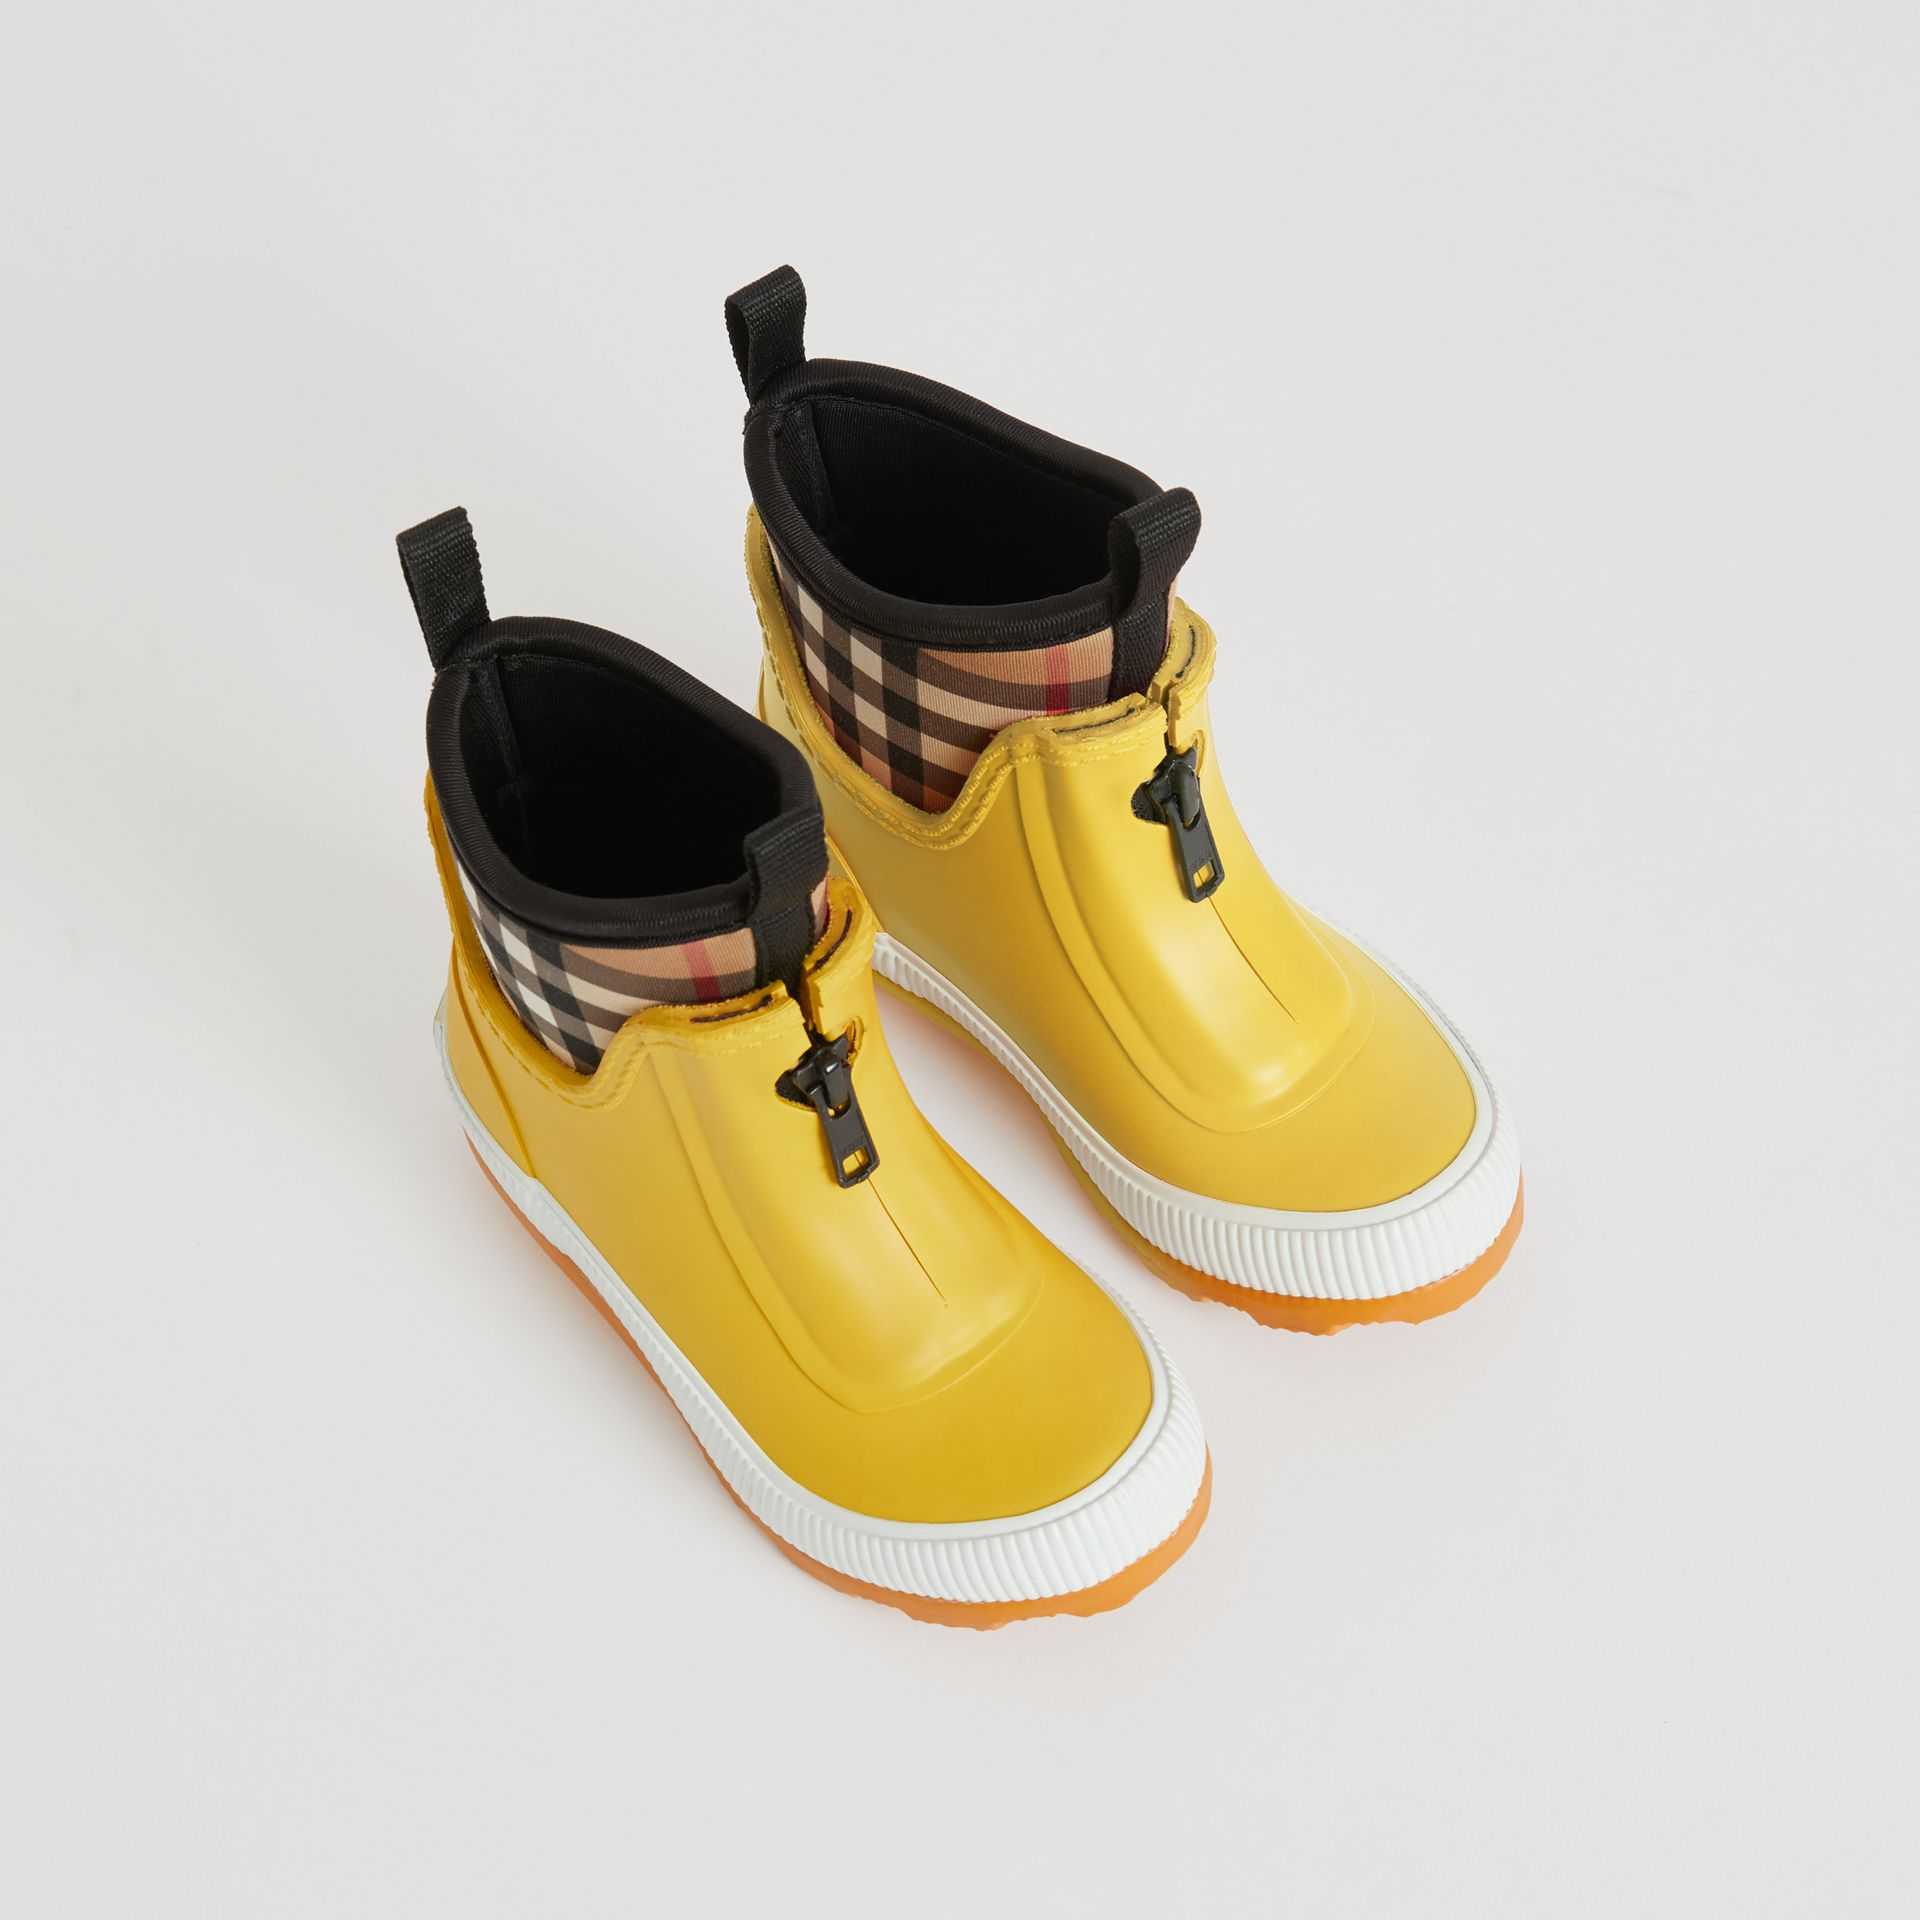 Vintage Check Neoprene and Rubber Rain Boots in Vibrant Lemon | Burberry - gallery image 0